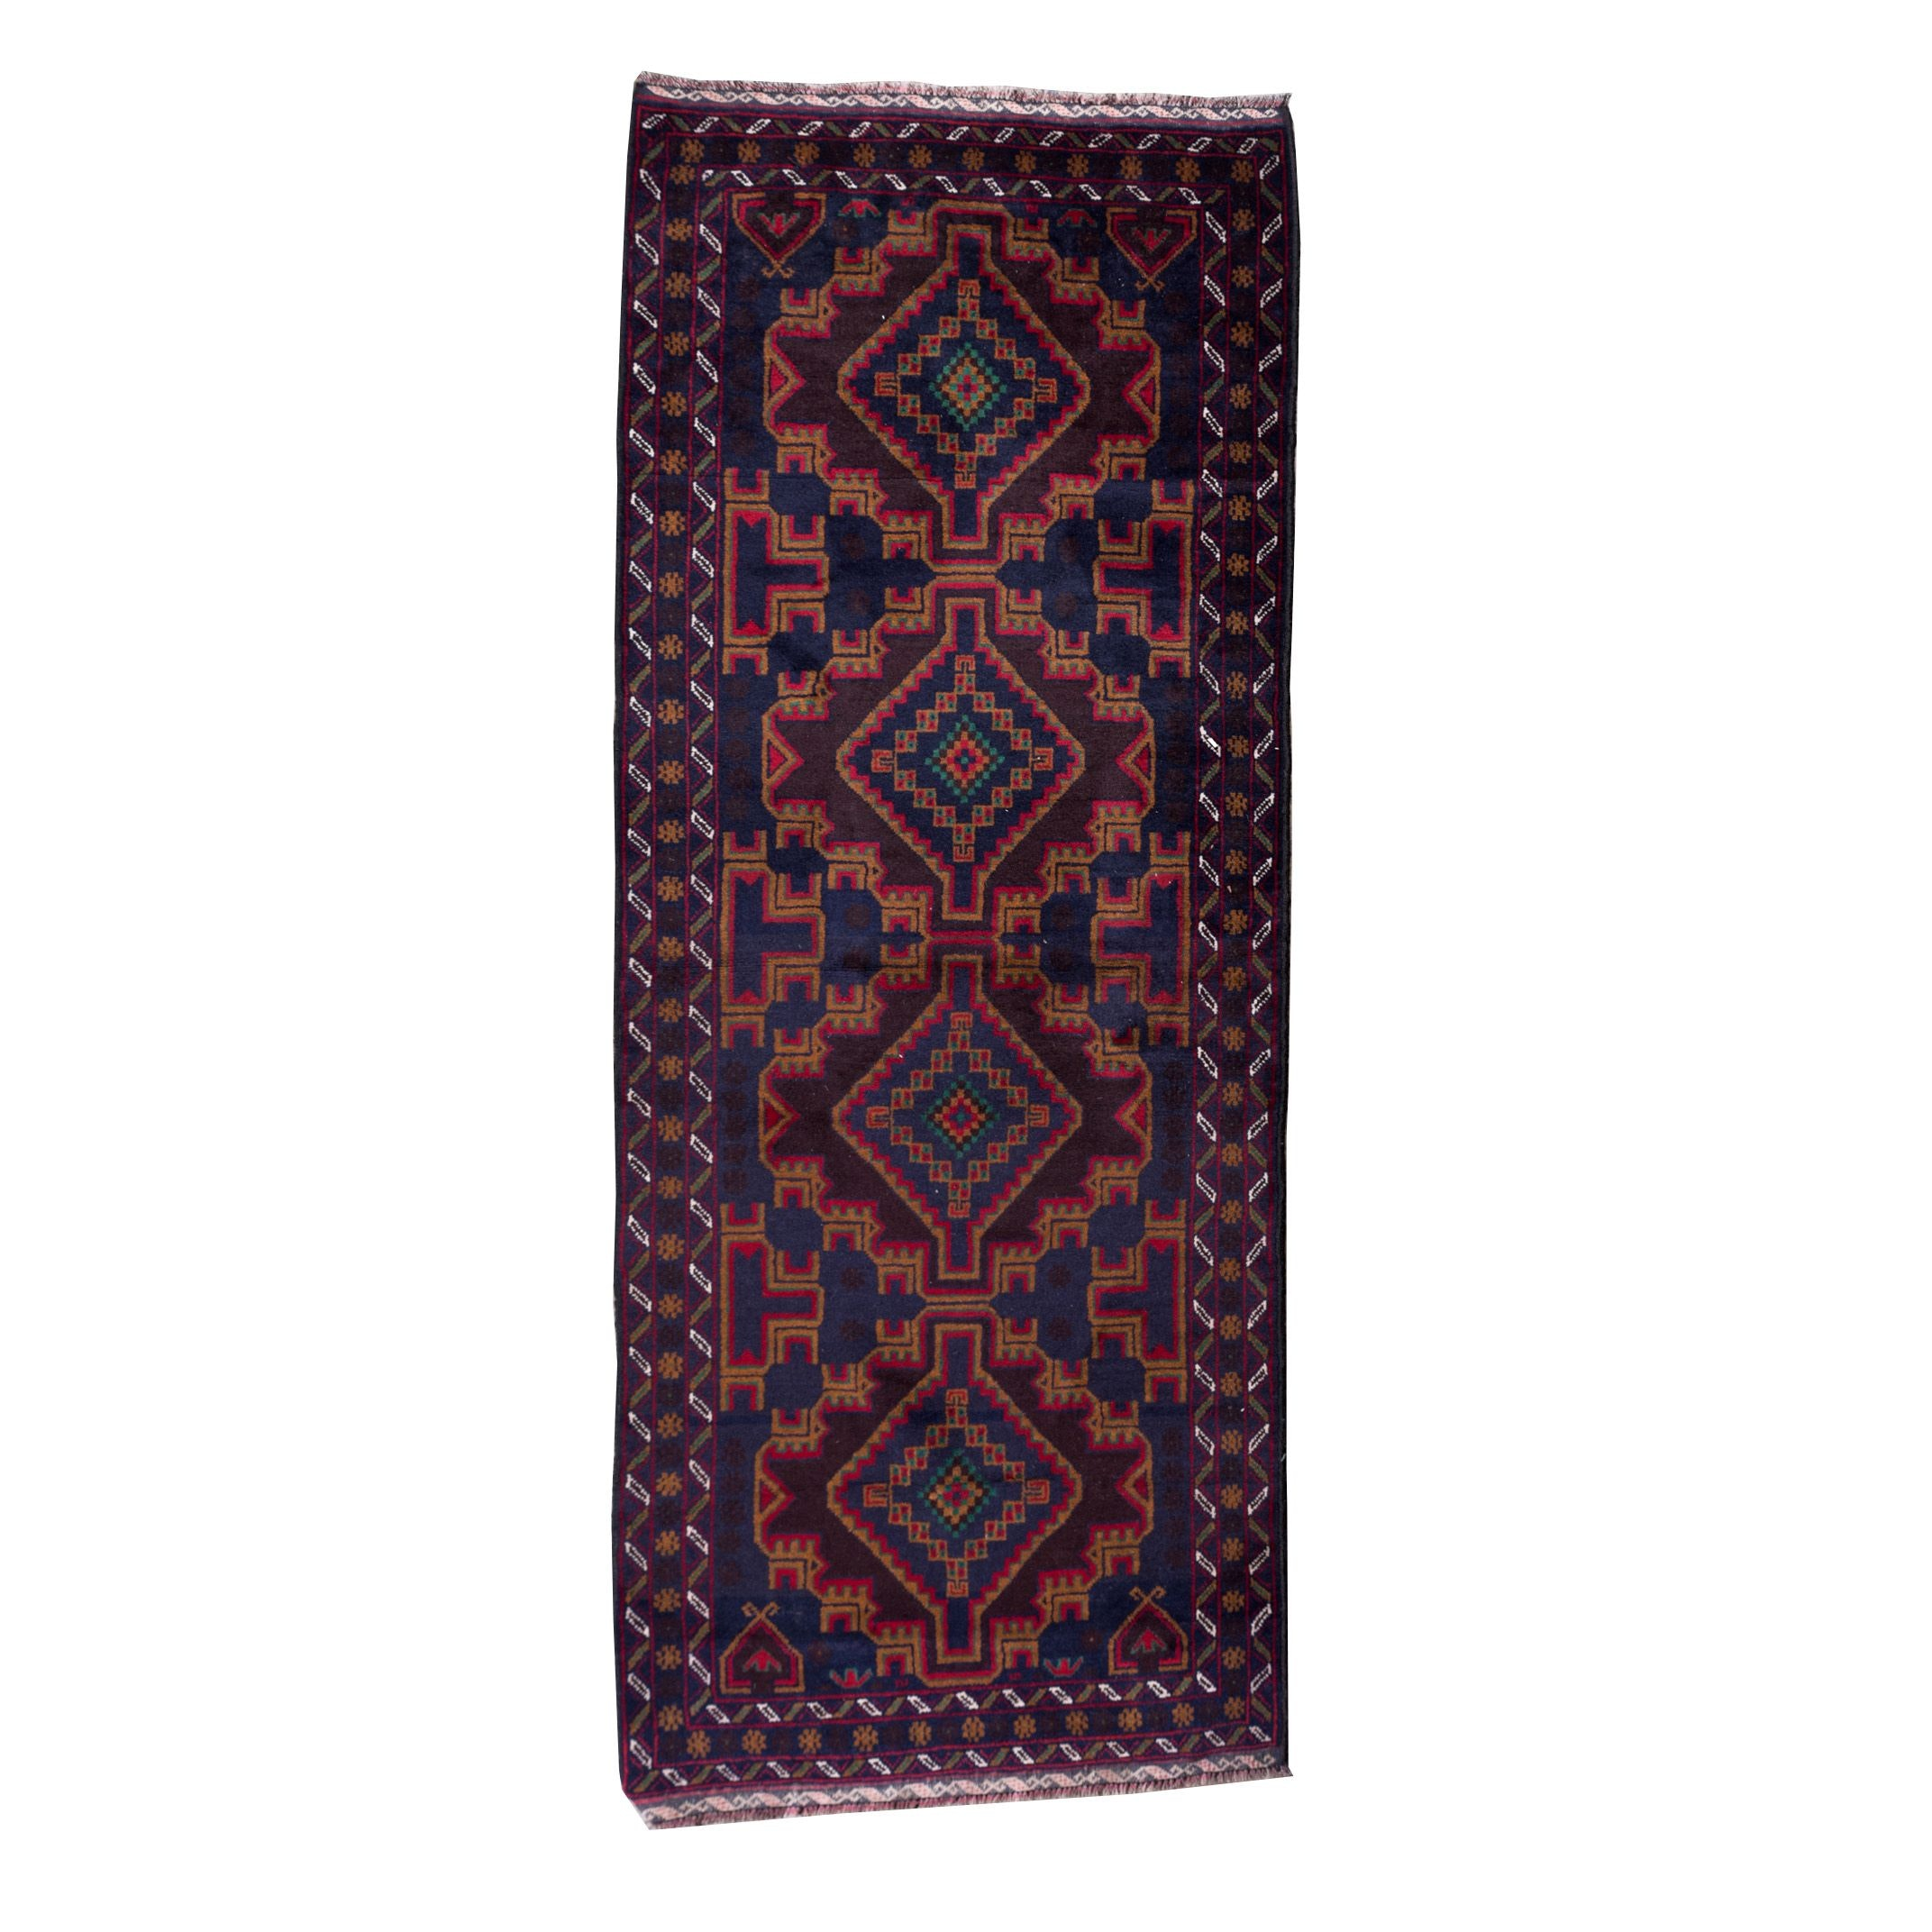 Hand-Knotted Northwest Persian Tribal Wool Carpet Runner